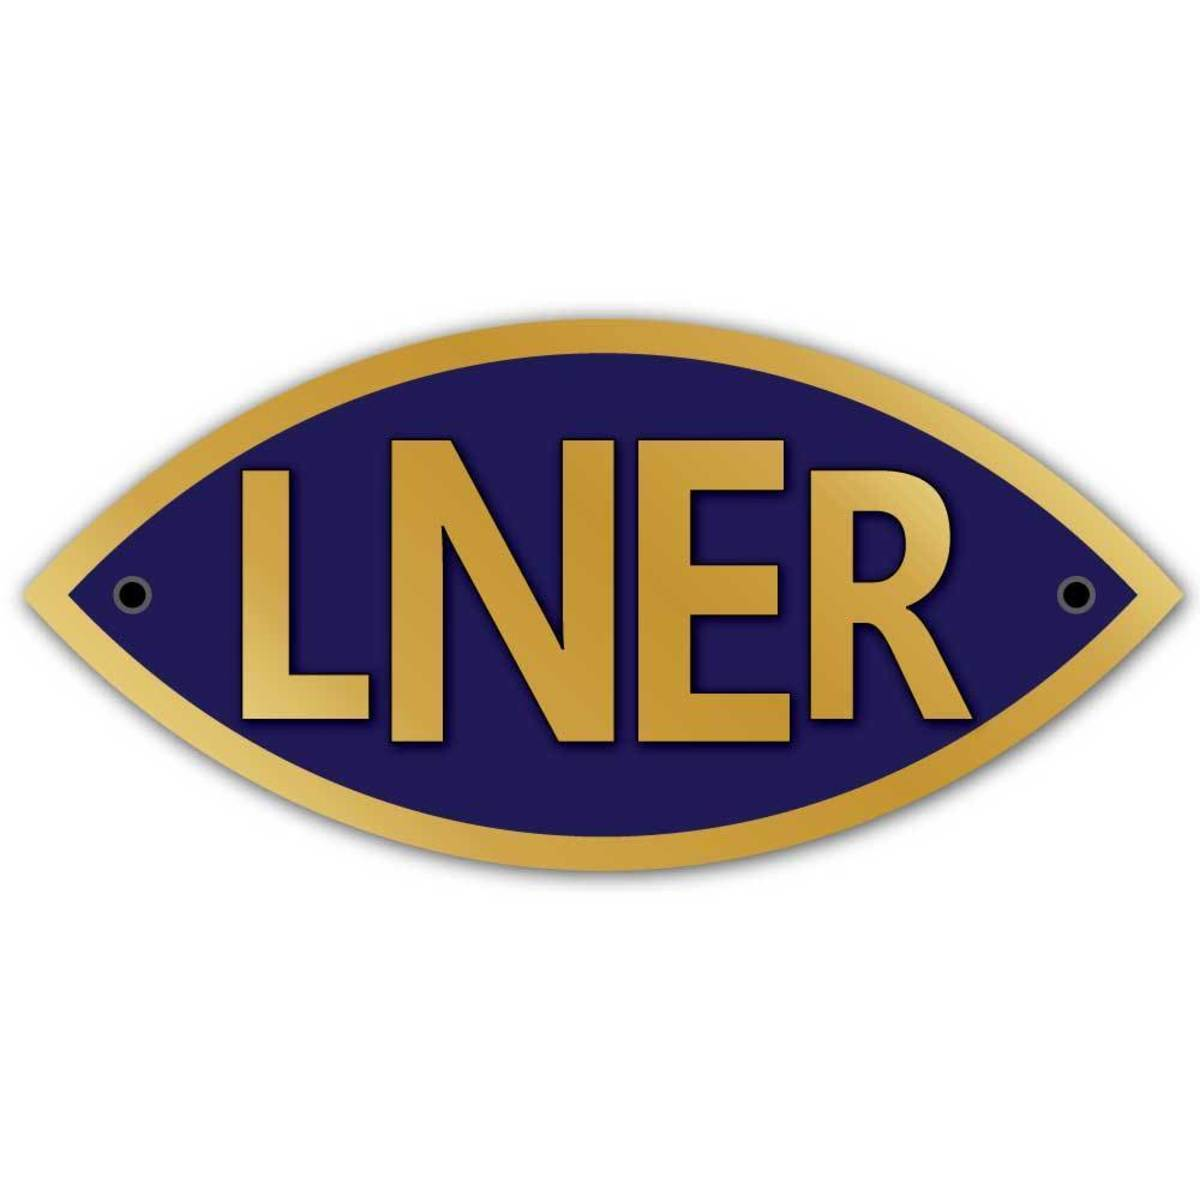 From 1923 to 1947 this was the totem of the London& North Eastern Railway - affectionately known as the 'London & Nearly Everywhere Railway'